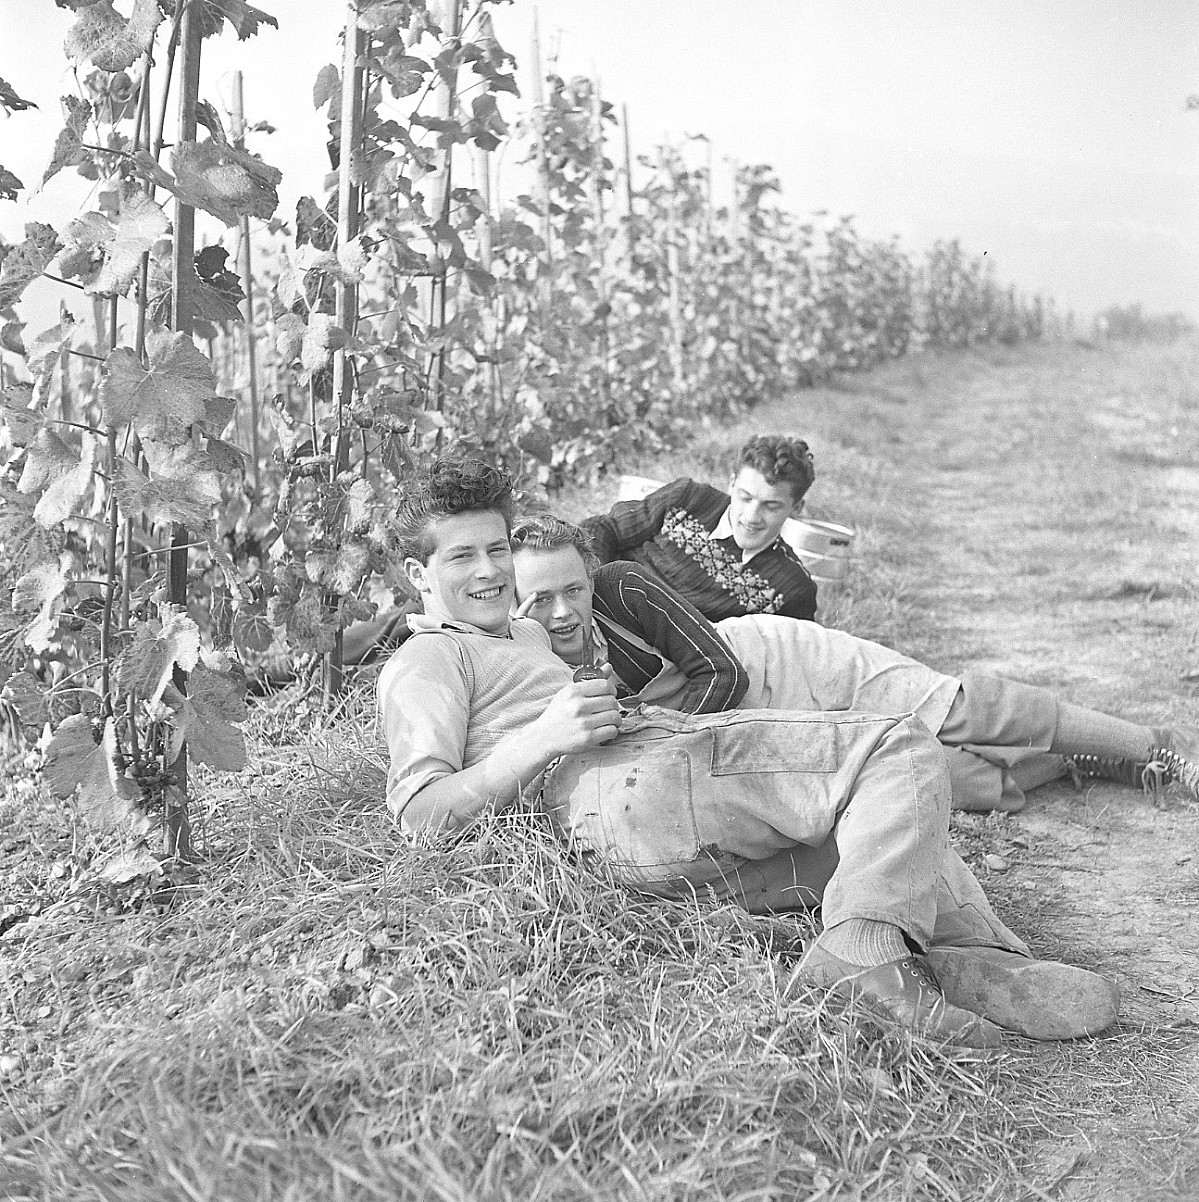 GFA 17/510963.9: Grape harvest at the apprentices' home in Dachsen